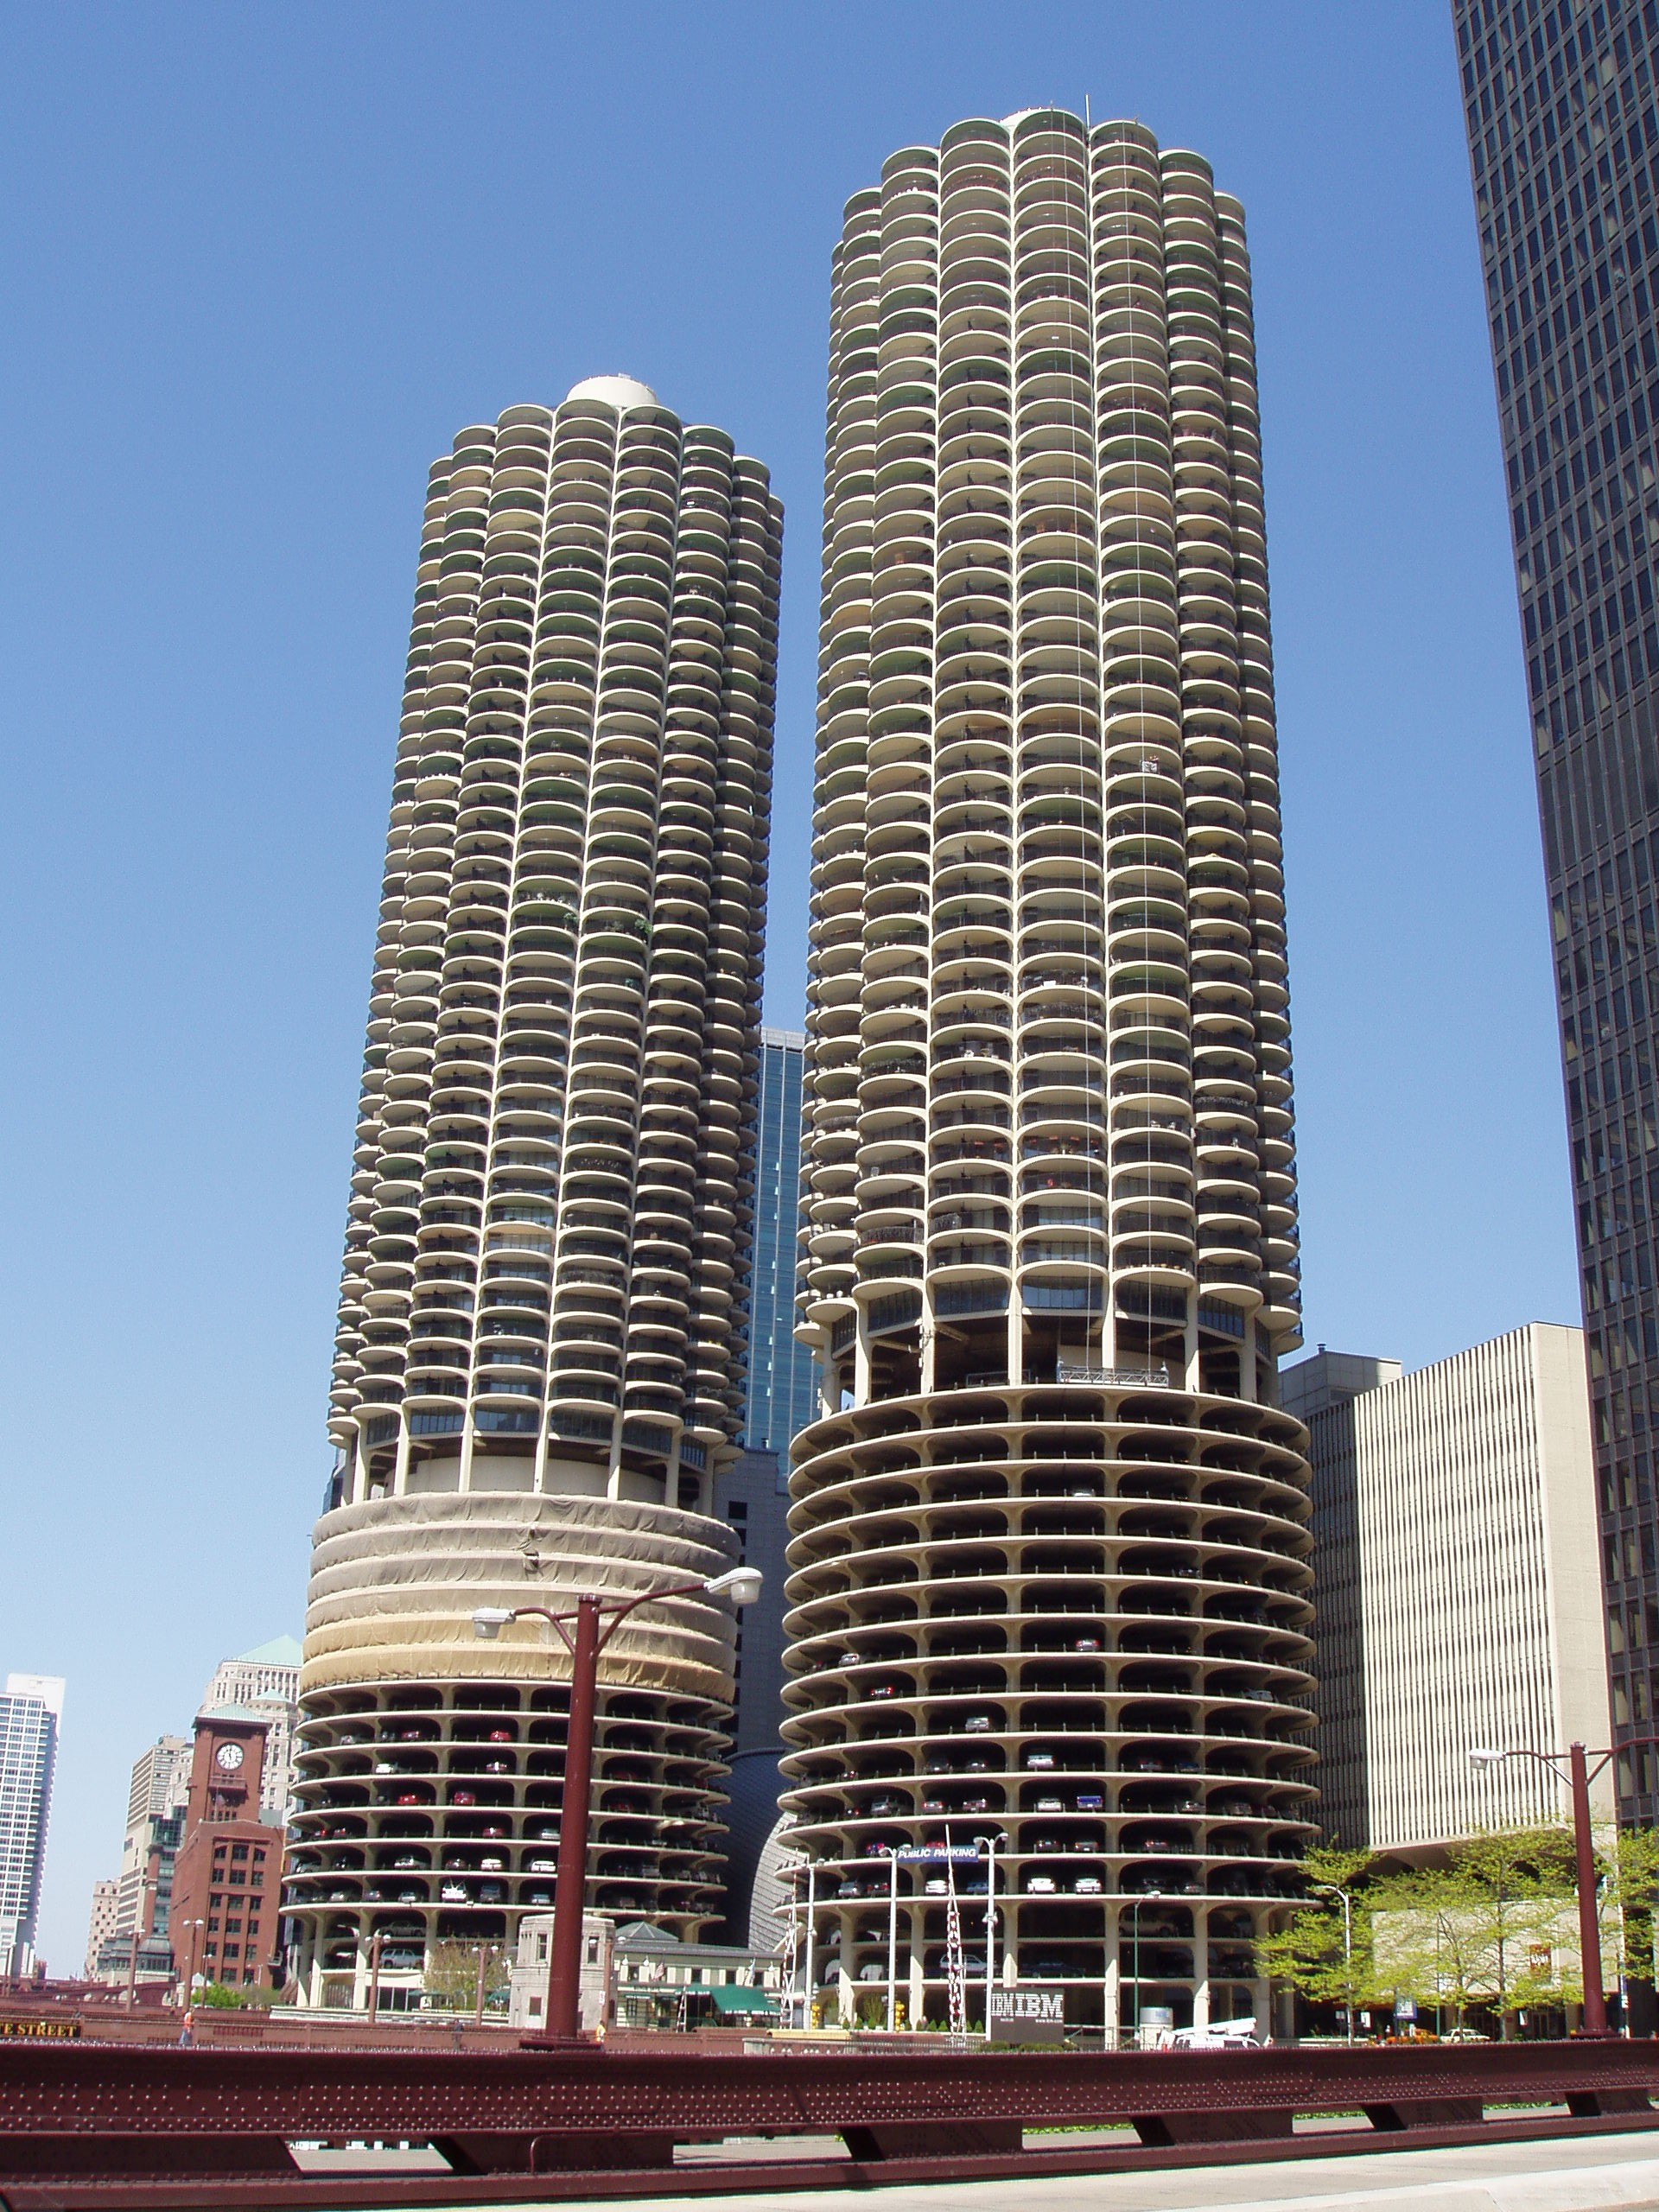 File:Marina City - Chicago, Illinois.JPG